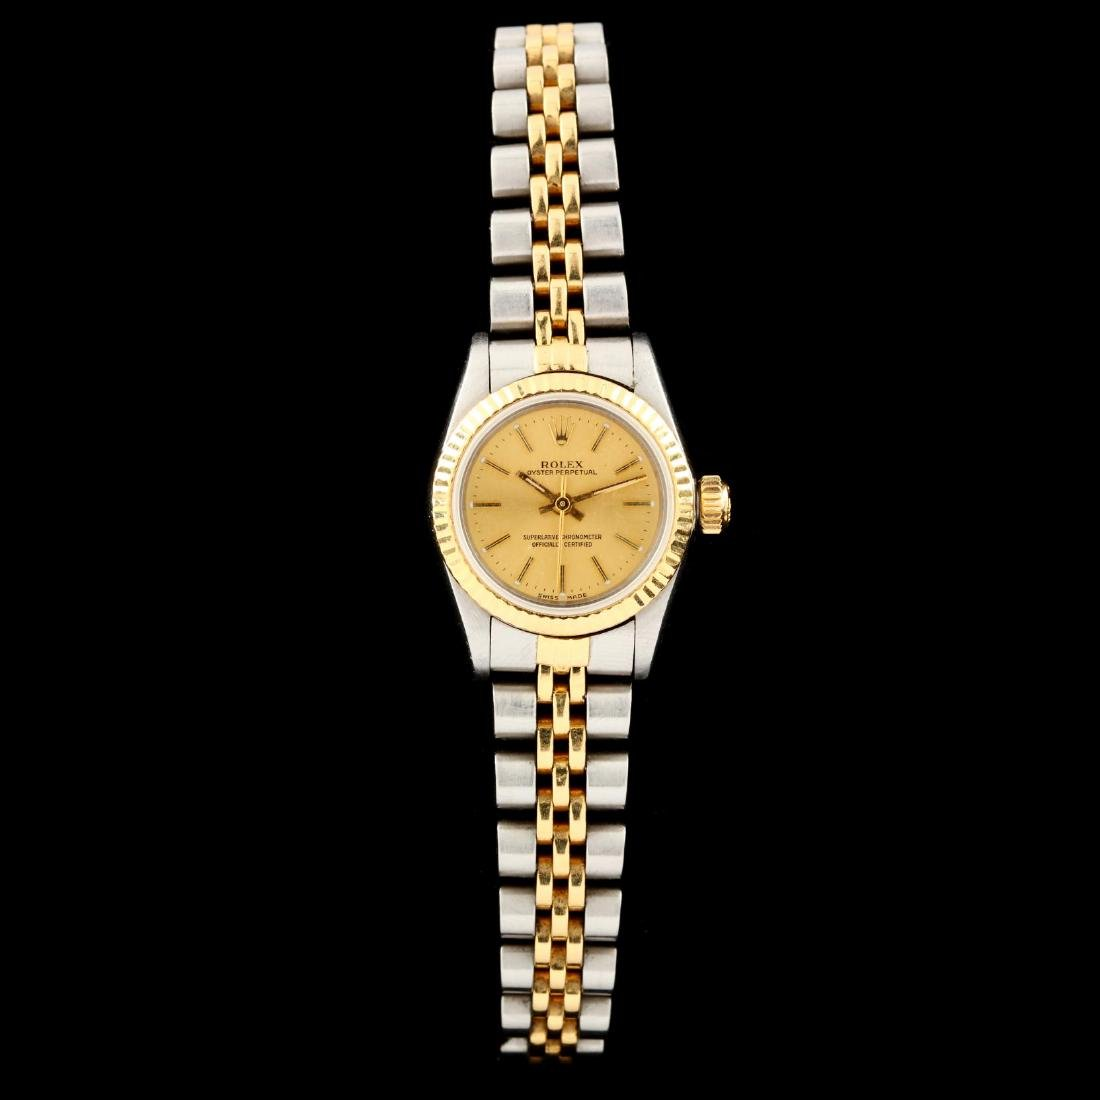 Lady's Stainless Steel and Gold Oyster Perpetual Watch,